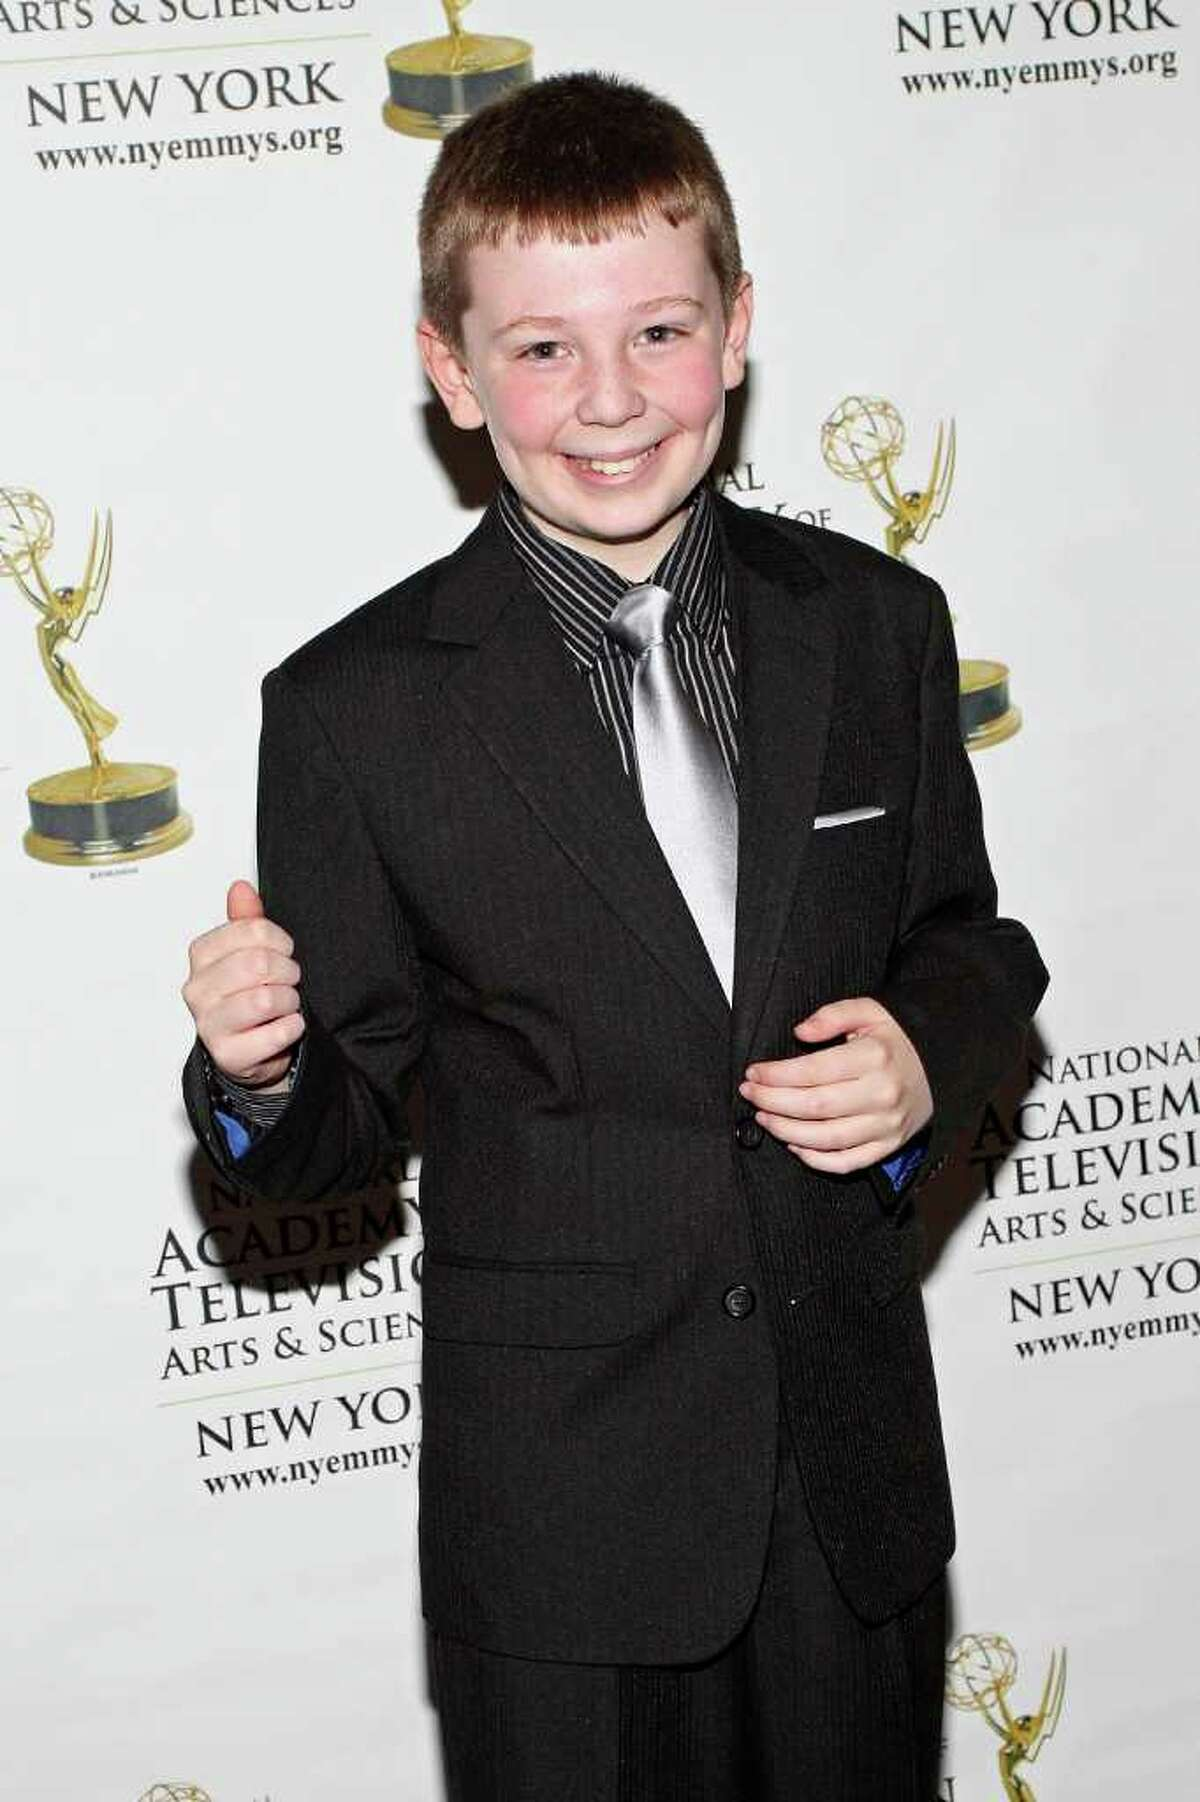 Jackson Murphy, whose show airs on YNN, also has his critics. (Steve Mack / Getty Images)